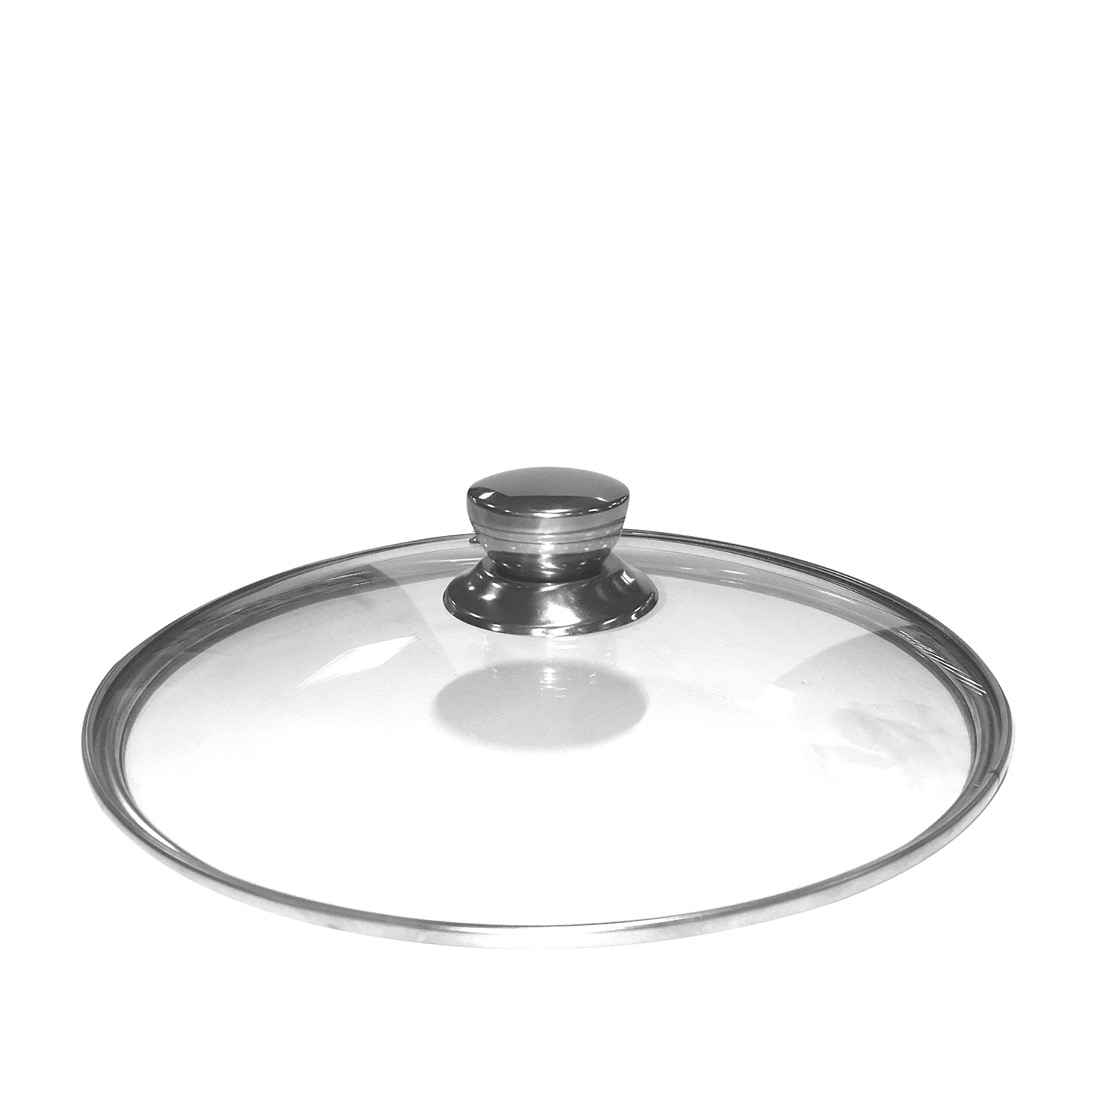 An image of Tempered Glass Lid for Pressure King Pro 5L & 6L